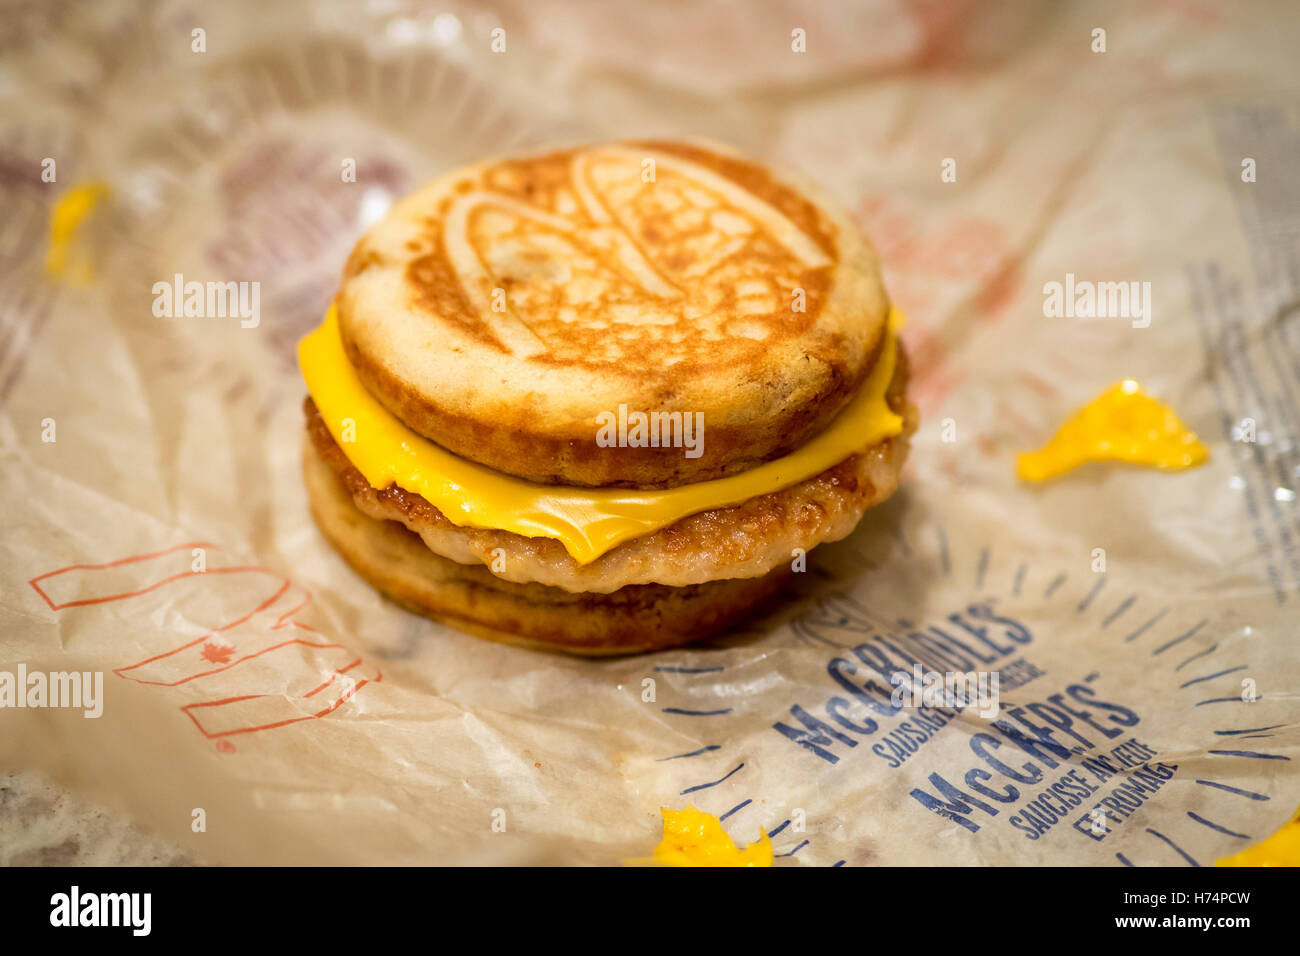 A McDonald's Sausage, Egg, and Cheese McGriddle breakfast sandwich. - Stock Image